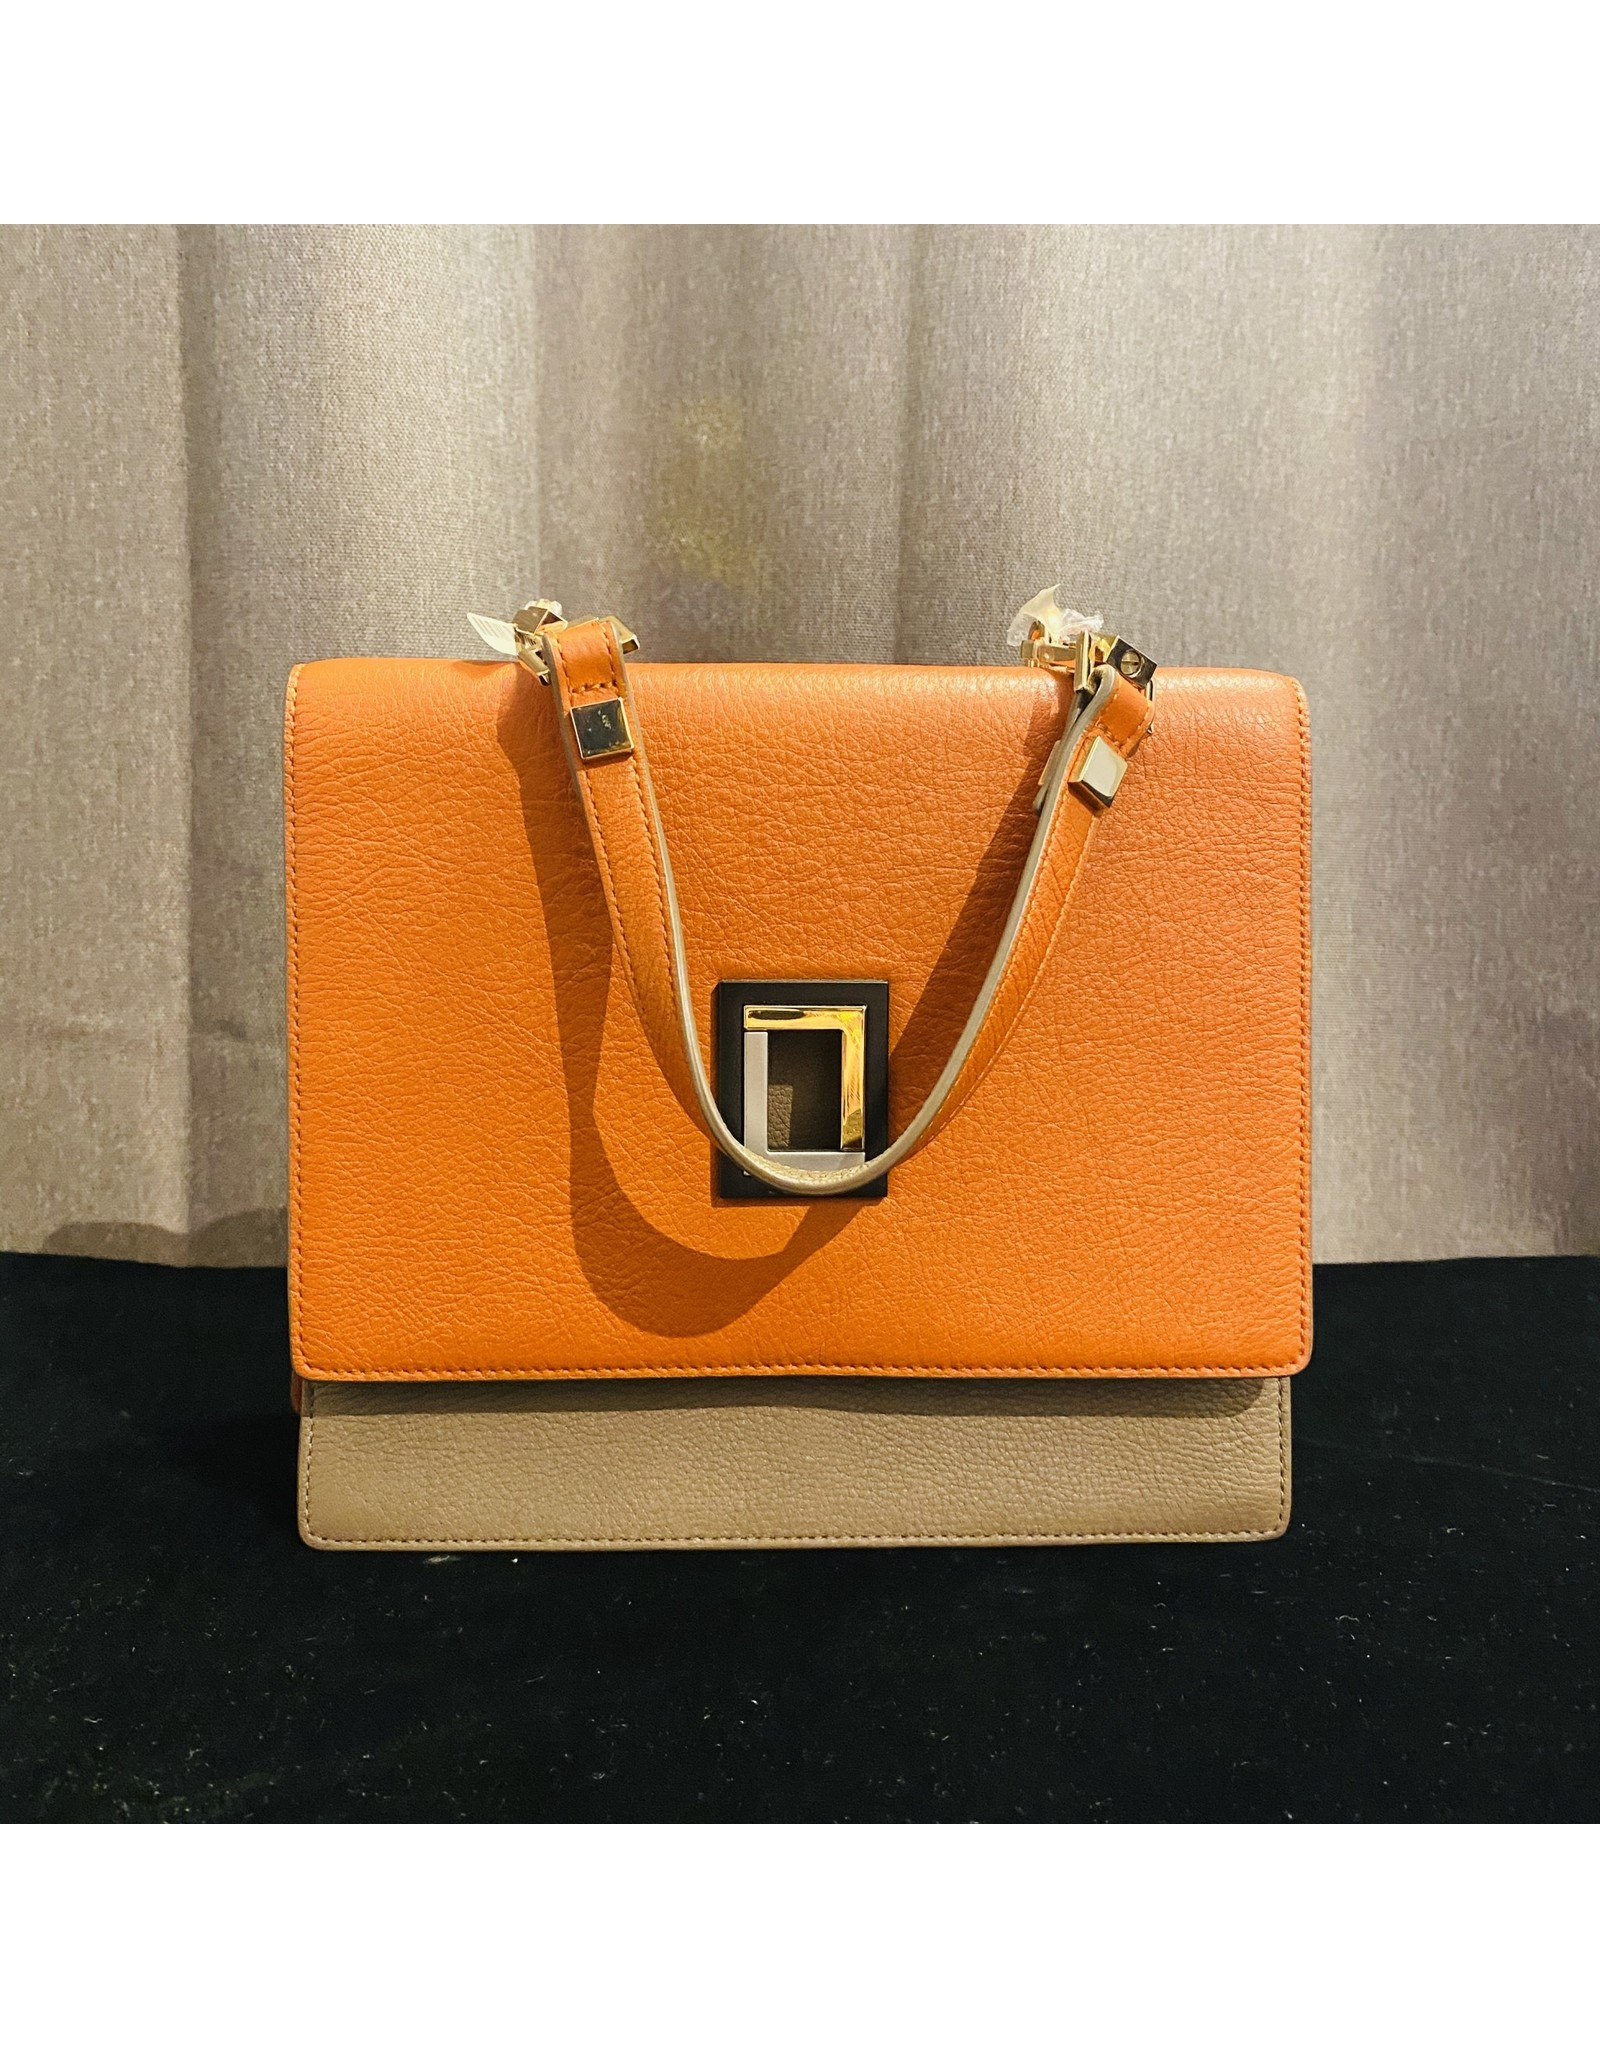 VC Accessories Marianna Satchel in Orange and Taupe